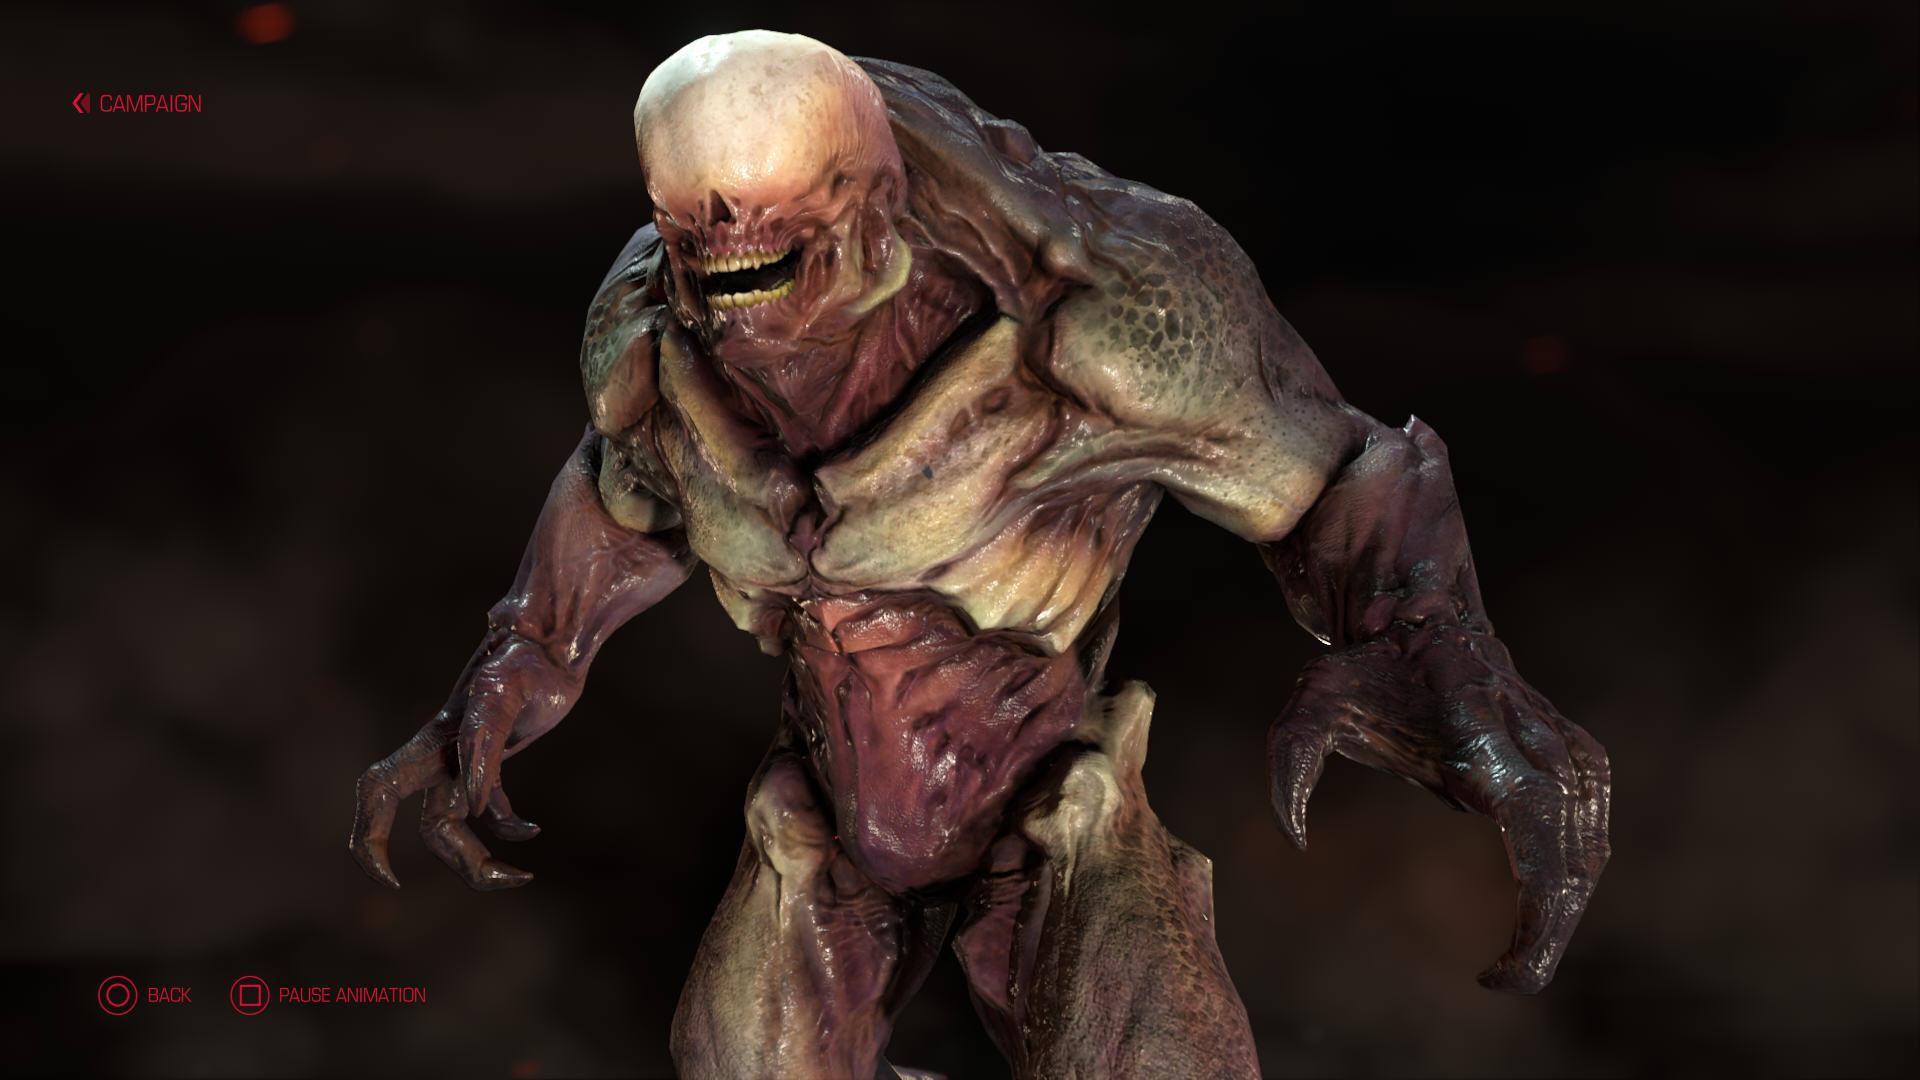 The latest Doom is great, but some of it's designs are plain